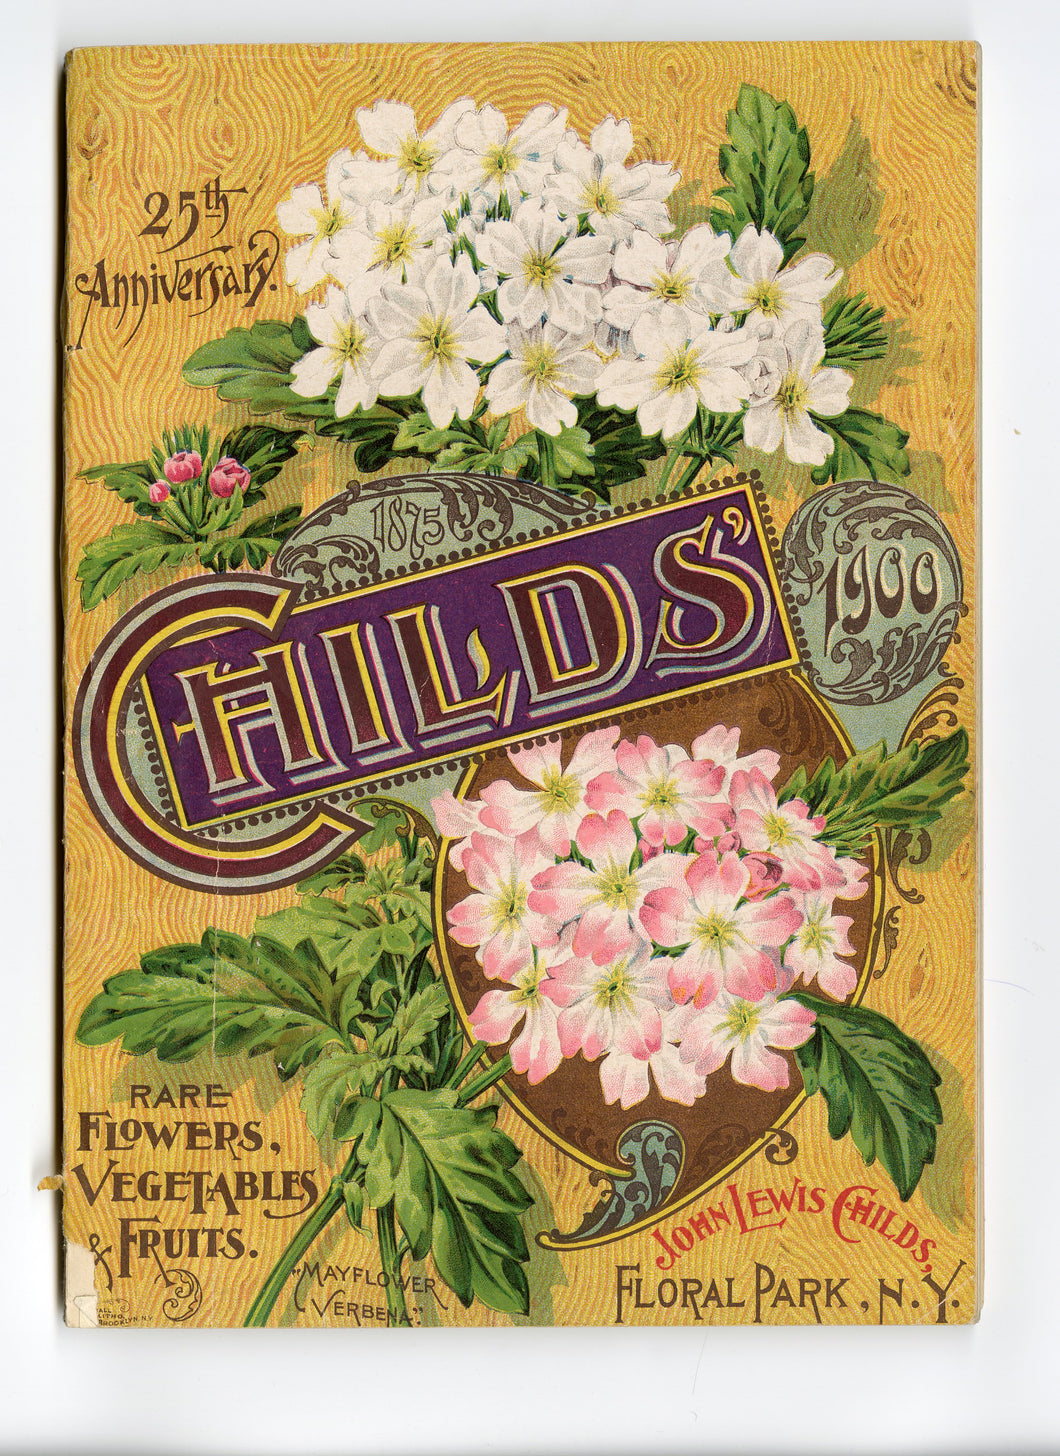 1900 Antique CHILDS' SEED CATALOG, Floral Park, NY, Garden, Farm, Flowers